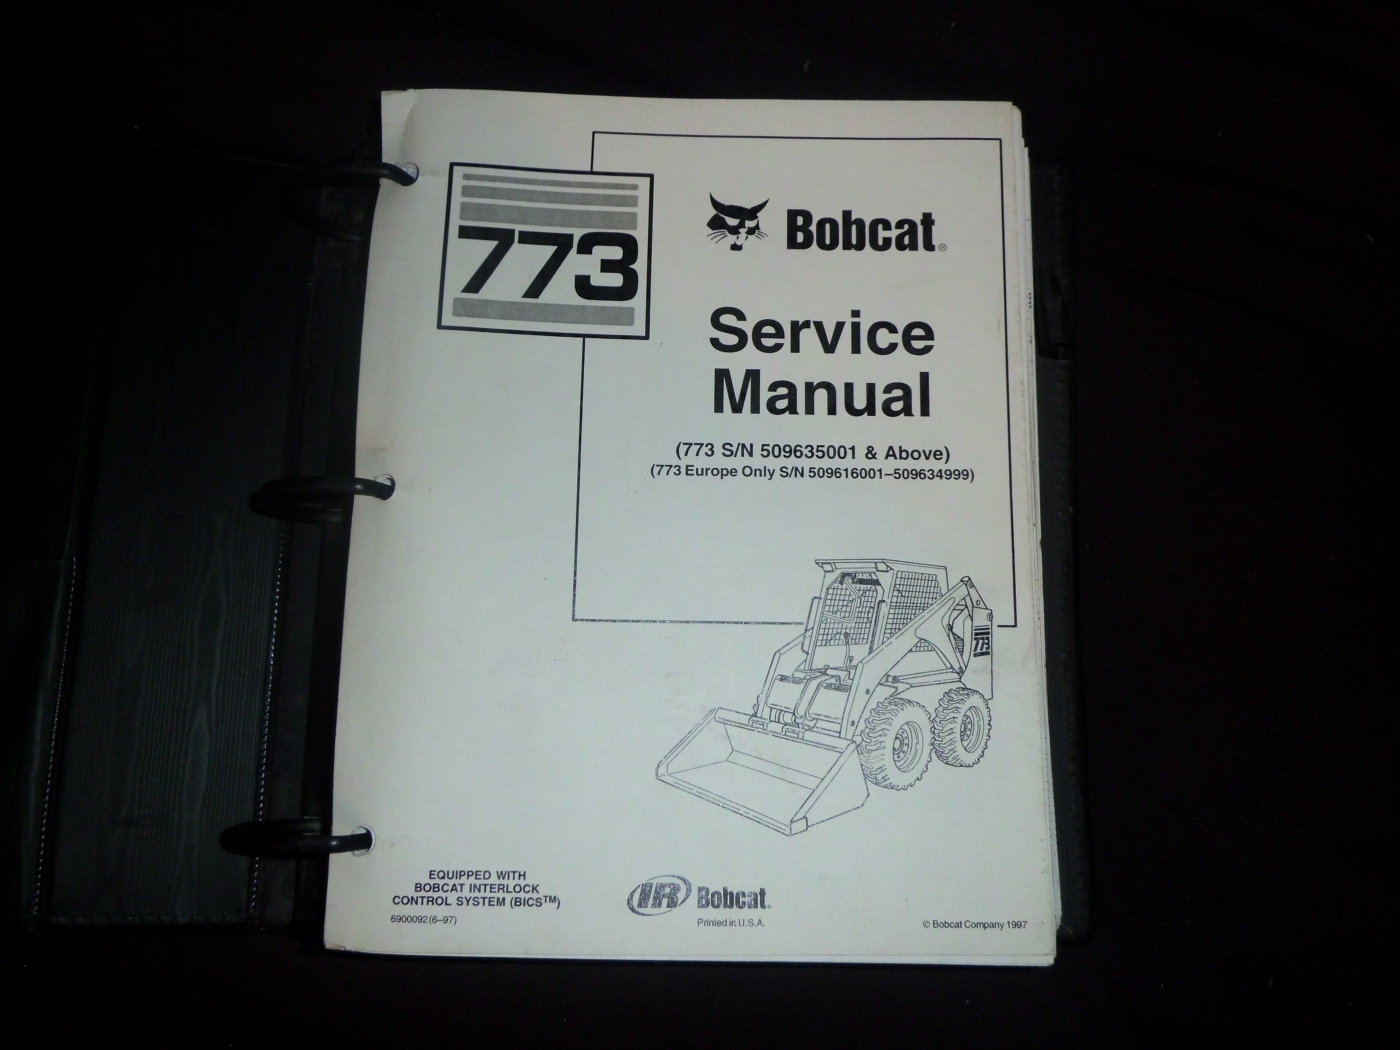 bobcat 753 wiring diagram manual bobcat image bobcat 773 wiring diagram bobcat wiring diagrams cars on bobcat 753 wiring diagram manual